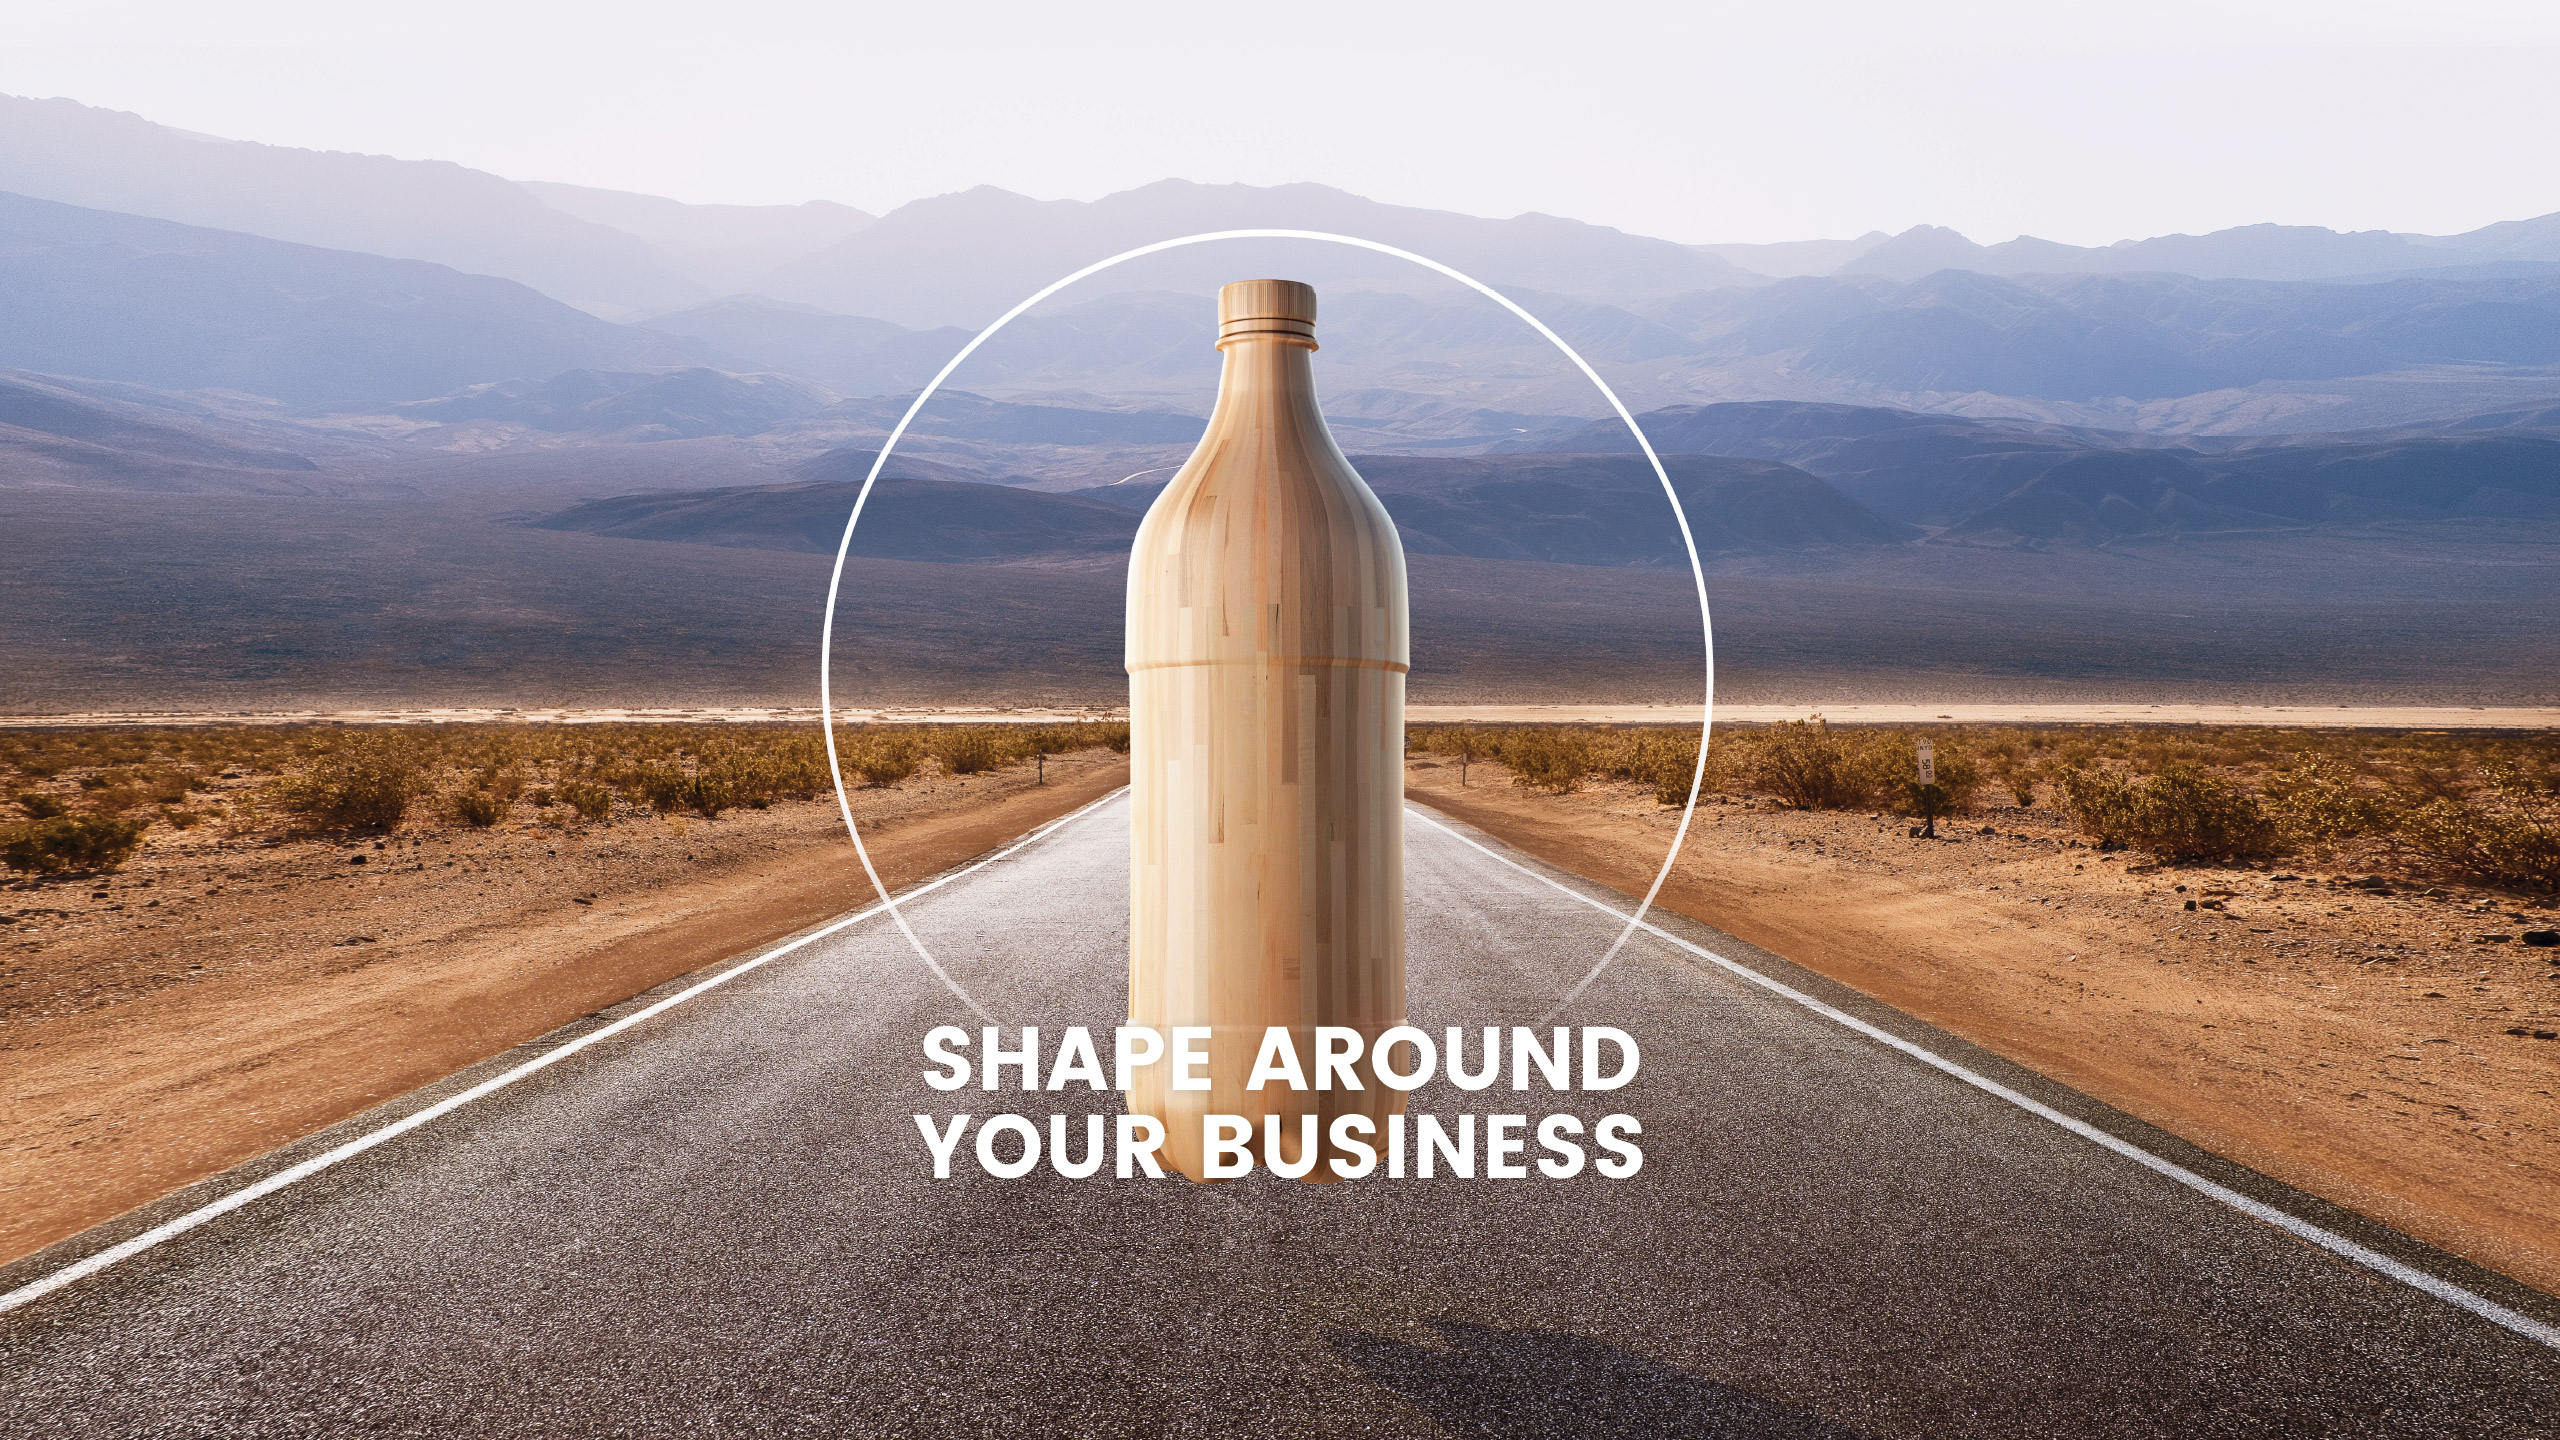 Bouteille de bois shape around your business